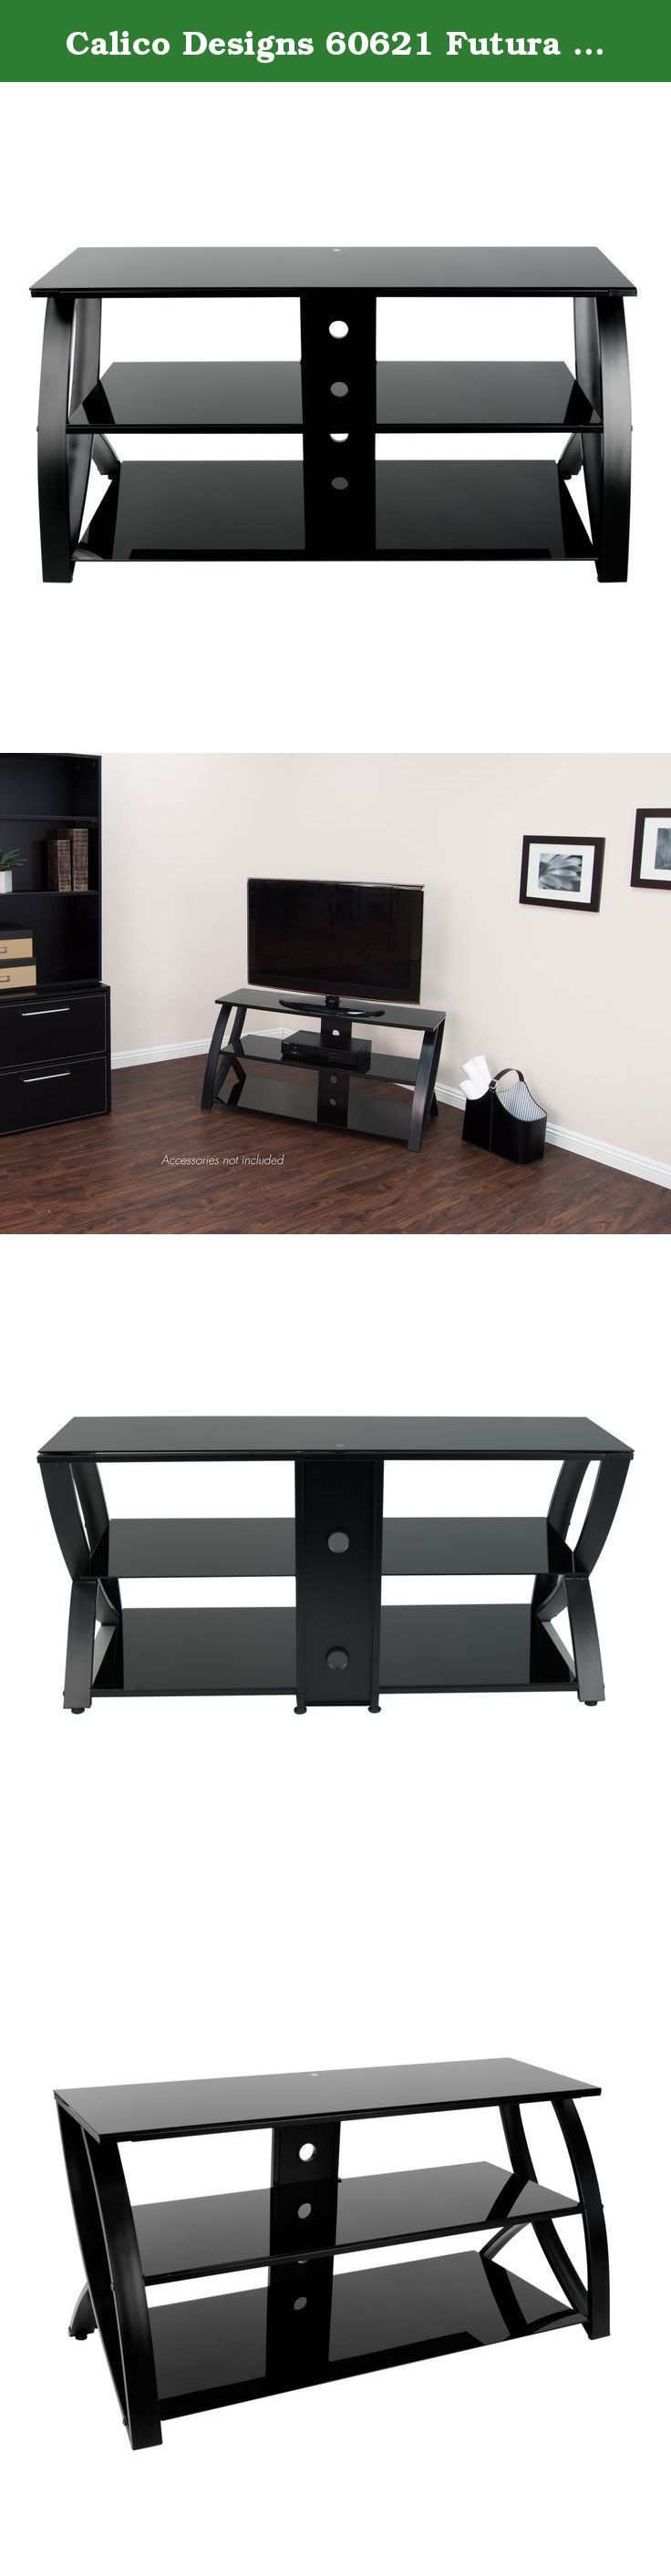 Calico Designs 60621 Futura Advanced TV Stand, 48-Inch Width by 19-Inch Depth by 23.5-Inch Height, Black with Black Glass. Calico designs' future advance TV stand offers sleek, contemporary lines that compliment today's hi-tech home theatre options. A rear panel with round cut-outs provide organized chord access. It is built with solid metal legs and floor levelers for stability. Large tempered glass shelves accommodates most 50 inch TV's and several home theatre and gaming items. (TV…